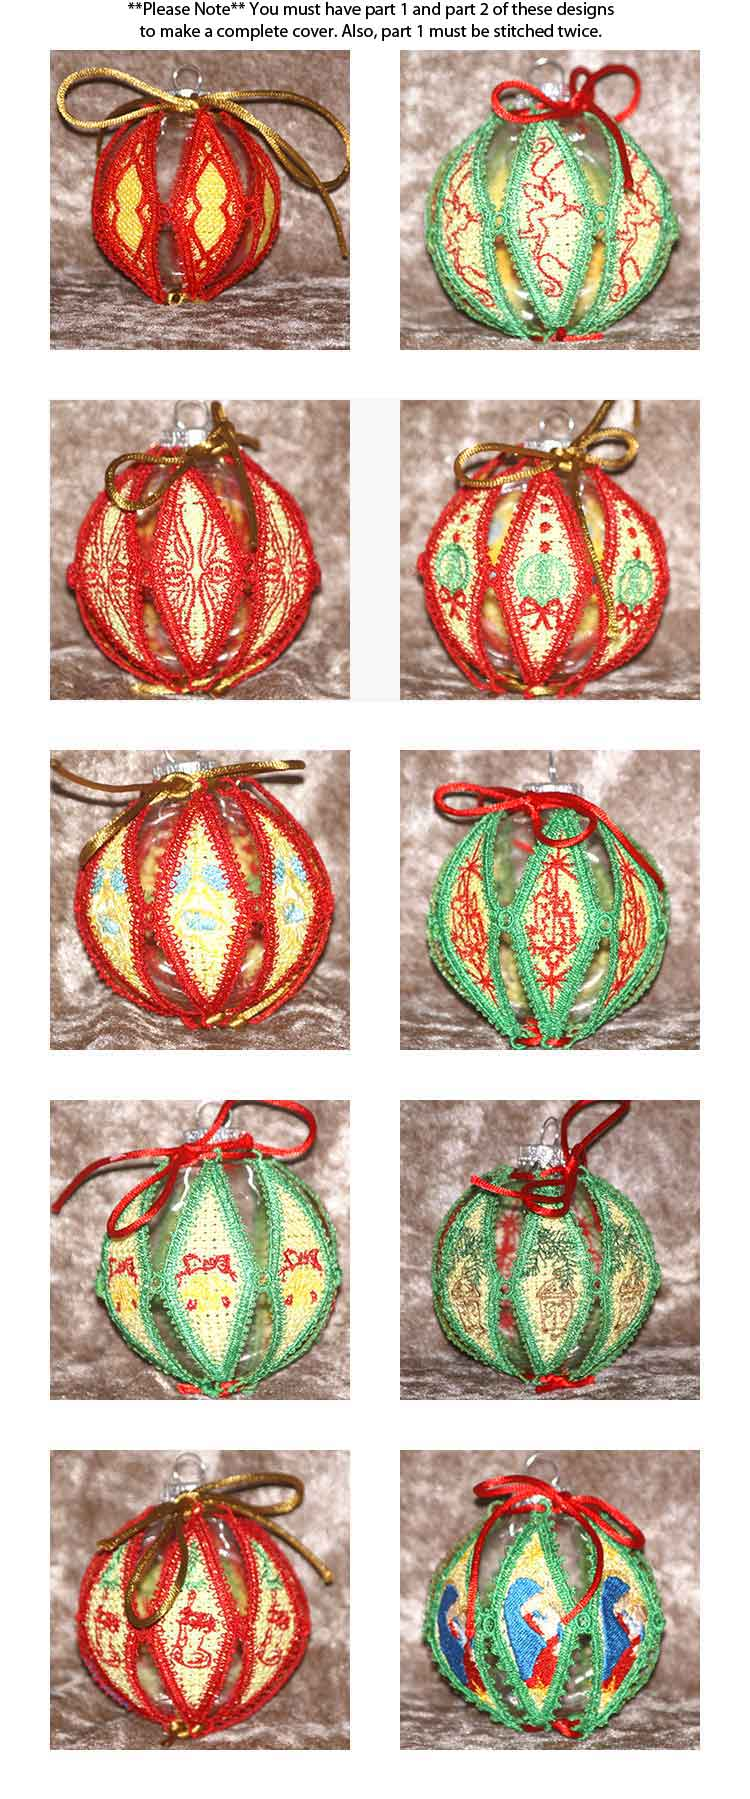 Lace Holiday Ornament Covers Embroidery Machine Design Details